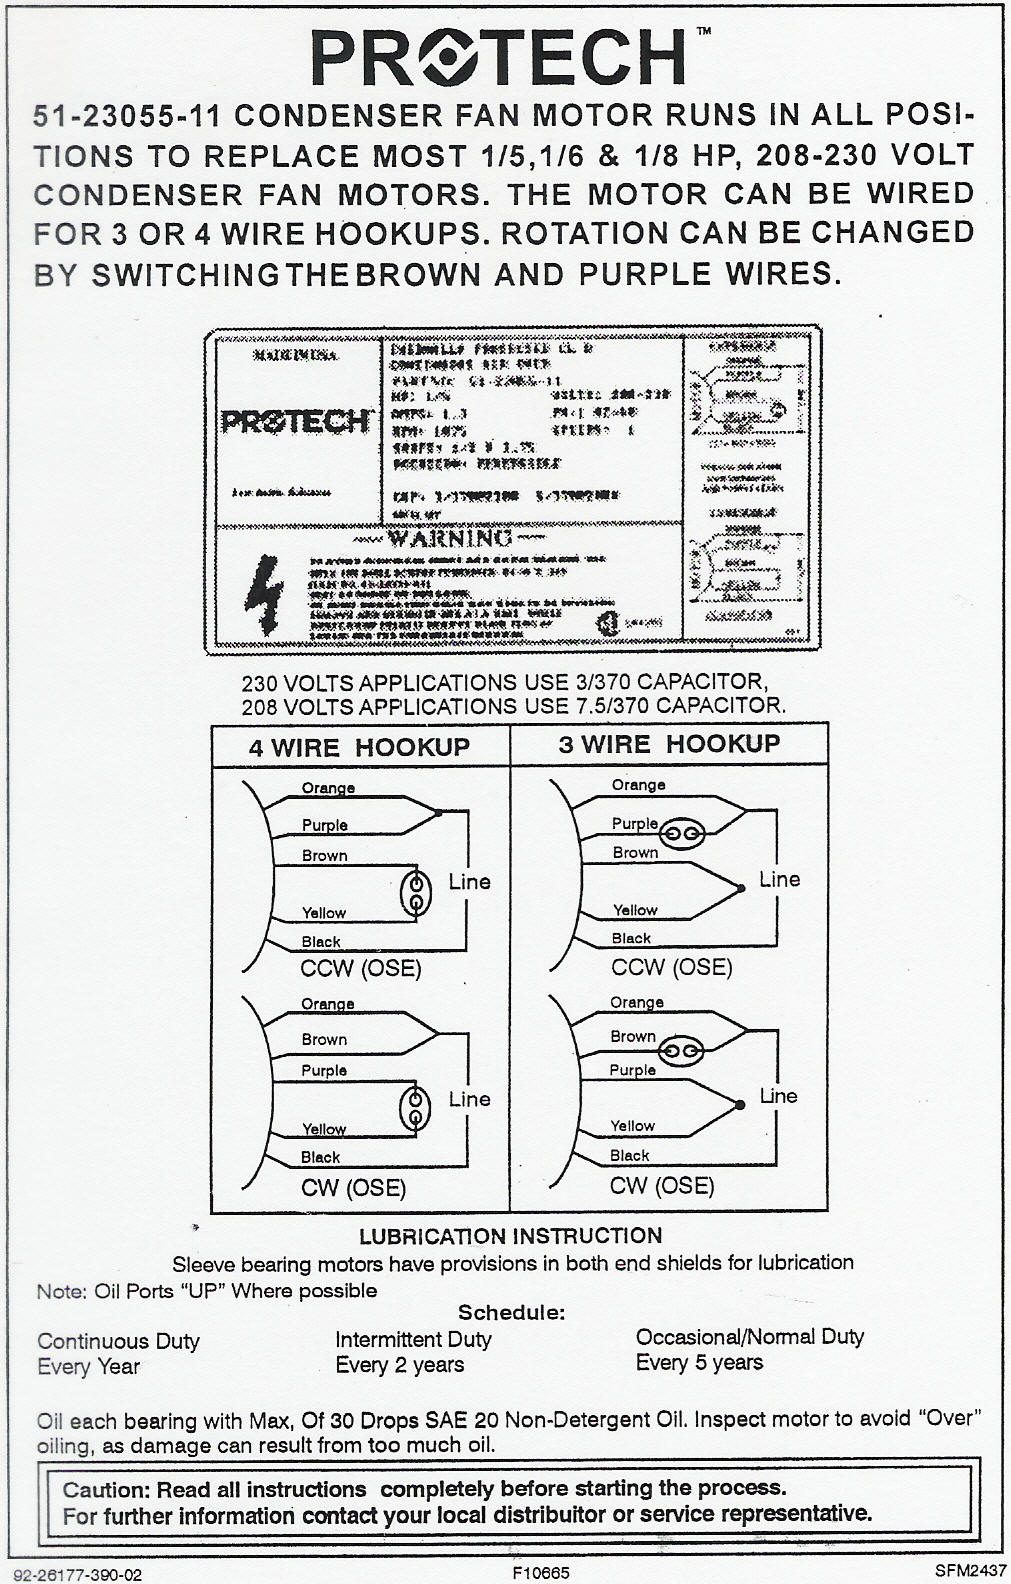 51 23055 11 wiring diagram rheem ruud condenser fan motor 51 23055 11 wiring diagram rheem air handler wiring diagram at bakdesigns.co